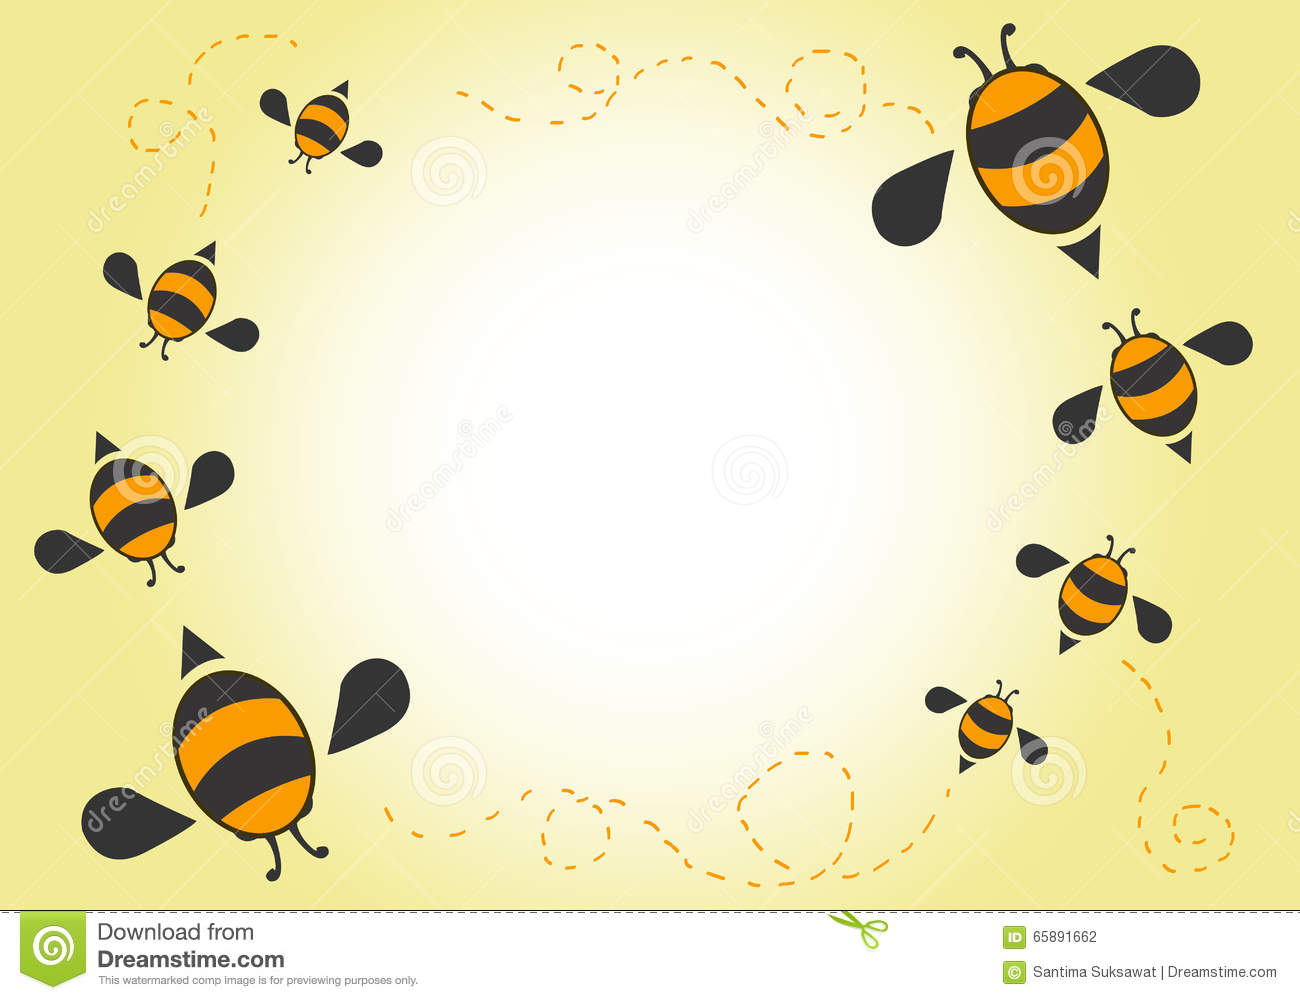 Cute Bees Wallpaper Bees Cartoon Background Stock Vector Image Of Ladybug